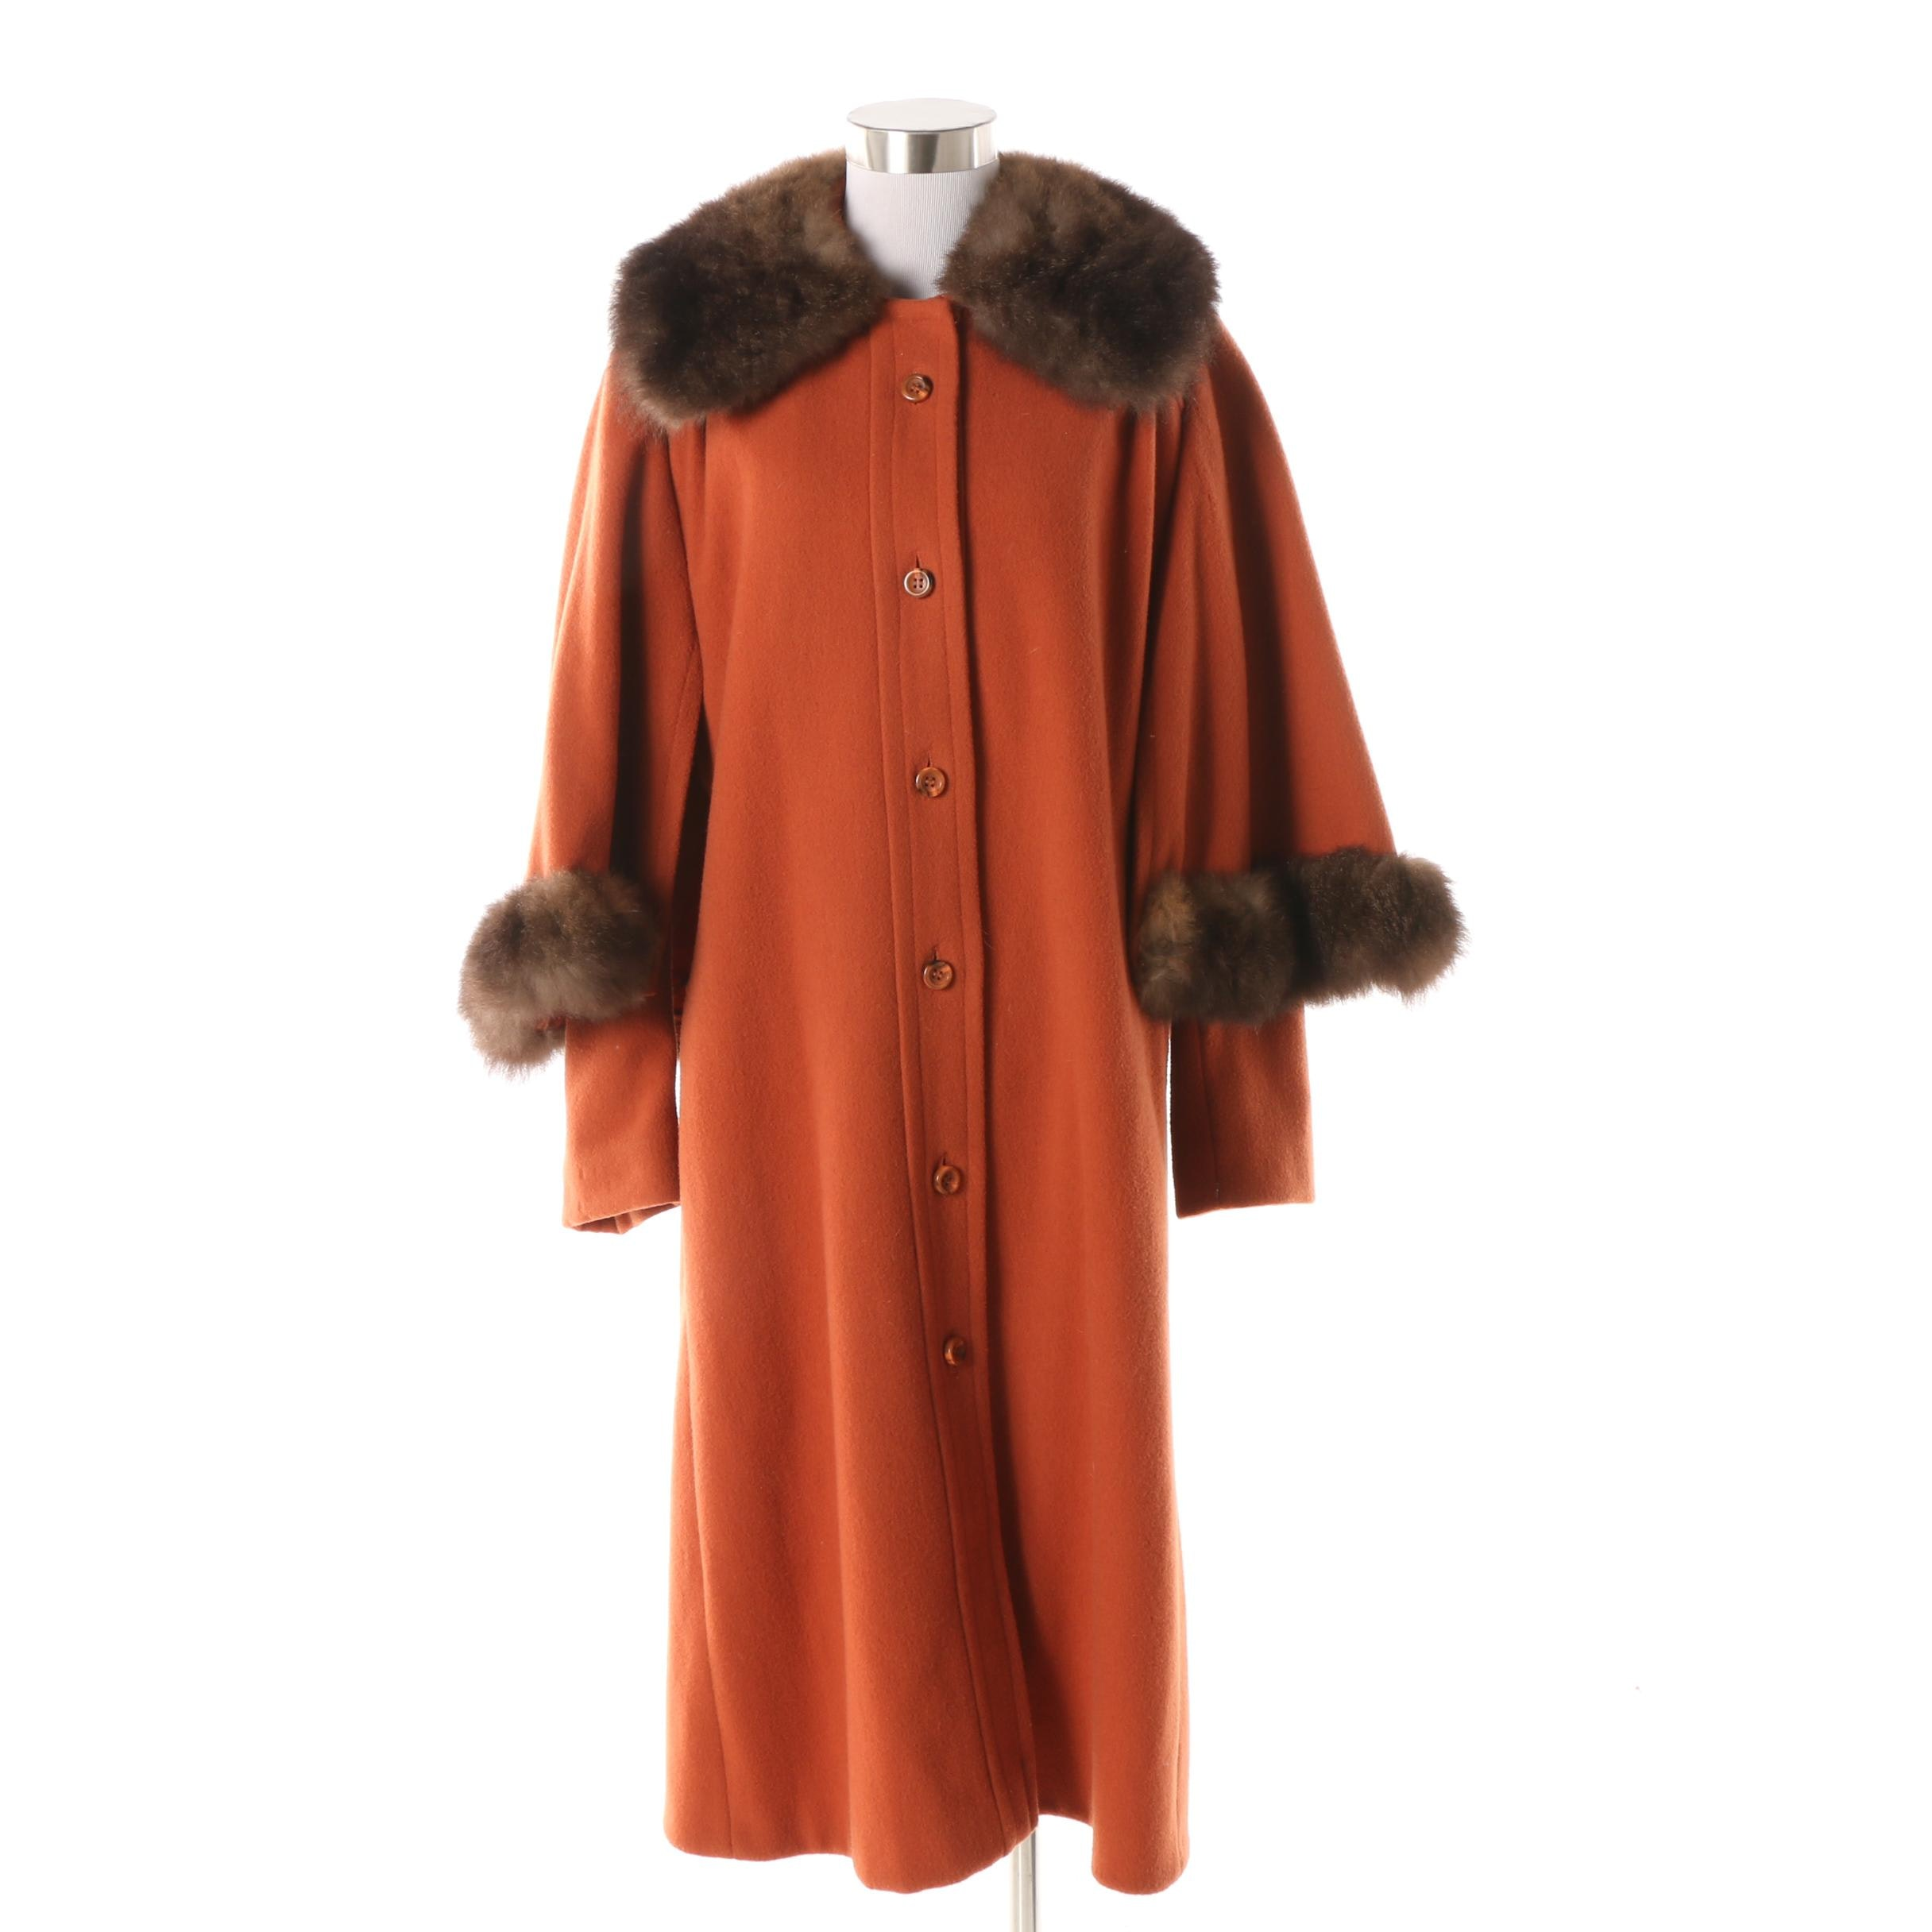 Orange Wool Cape Coat with Muskrat Fur Collar and Cape Accents